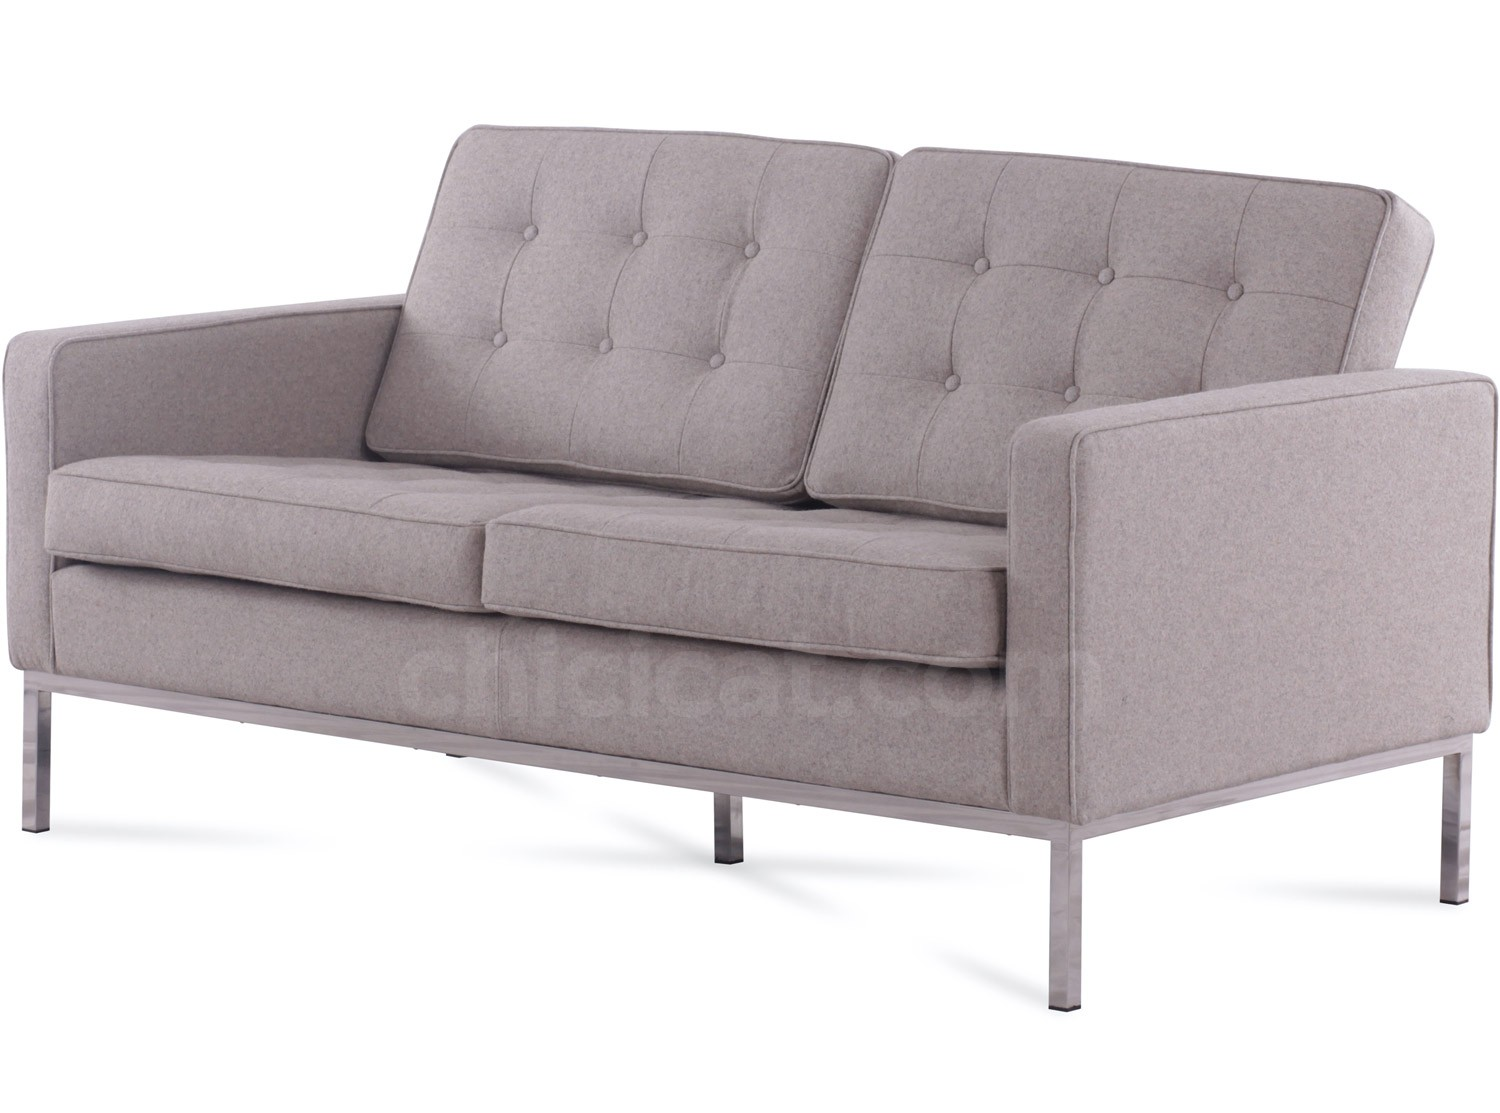 Florence Knoll Sofa 2 Seater Wool Platinum Replica